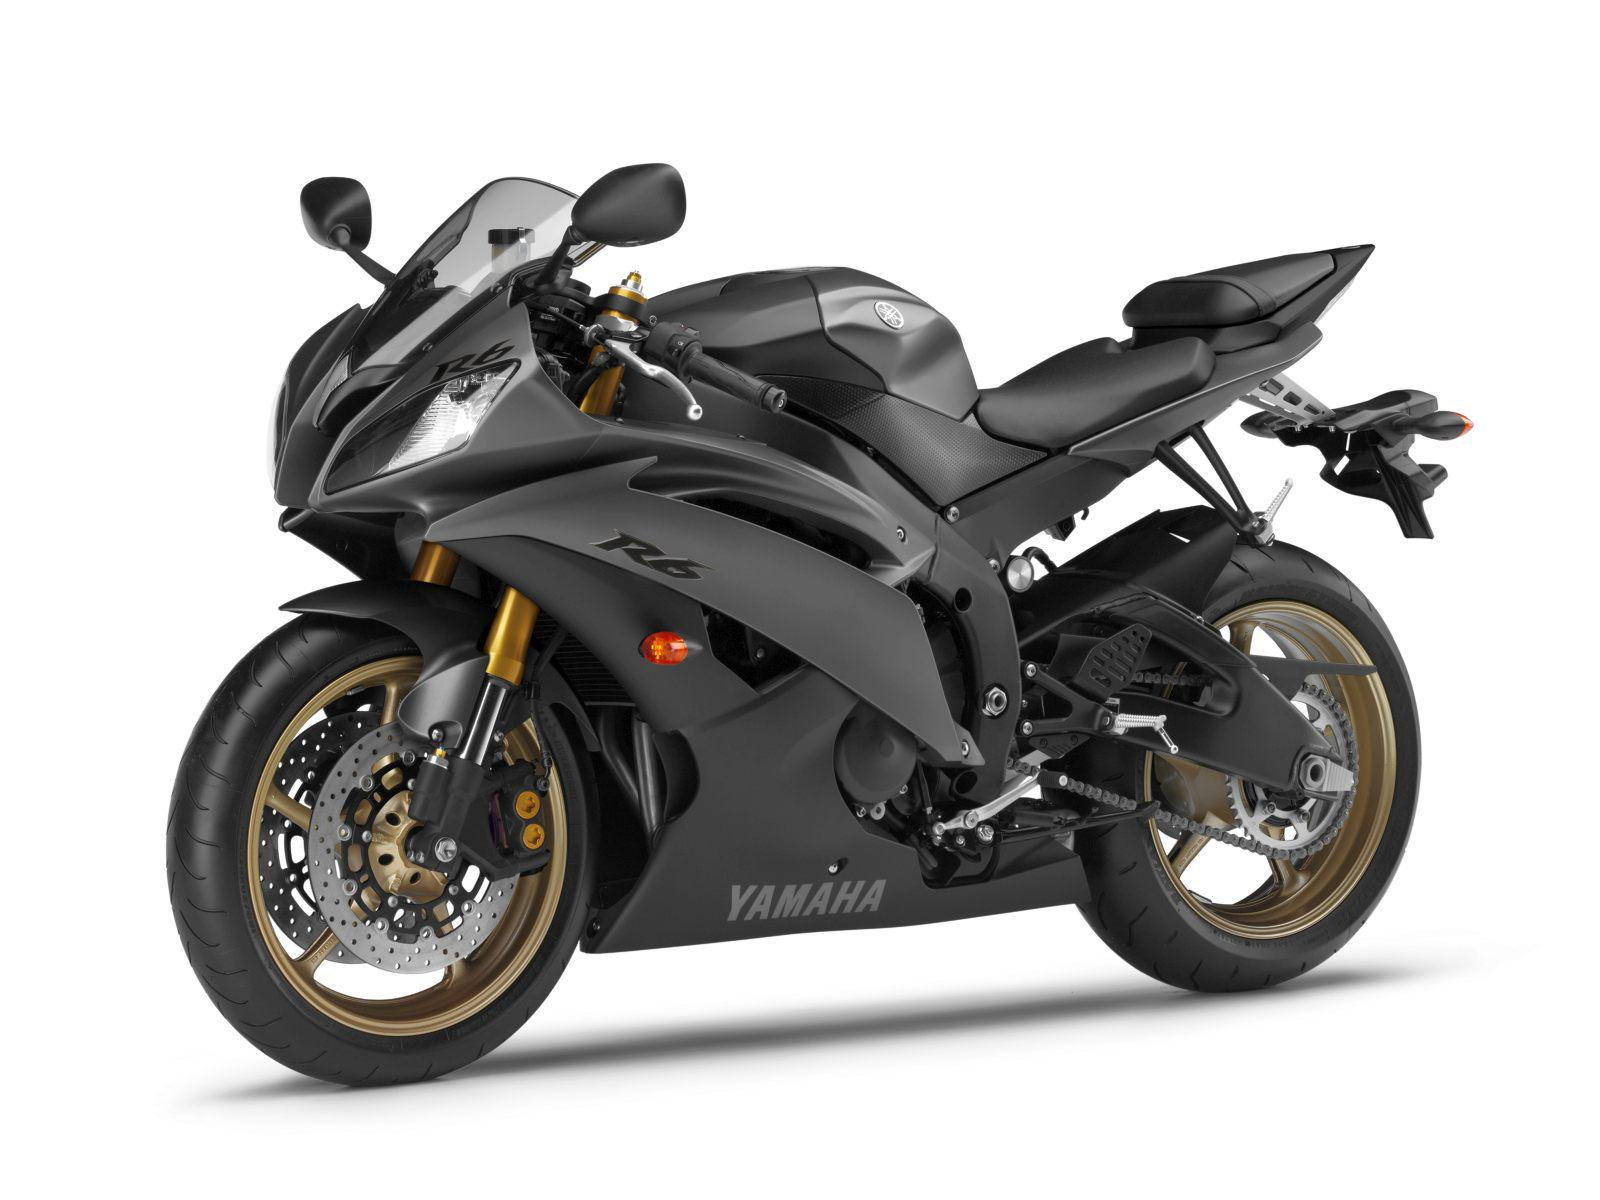 Is The Yamaha R A Supersport